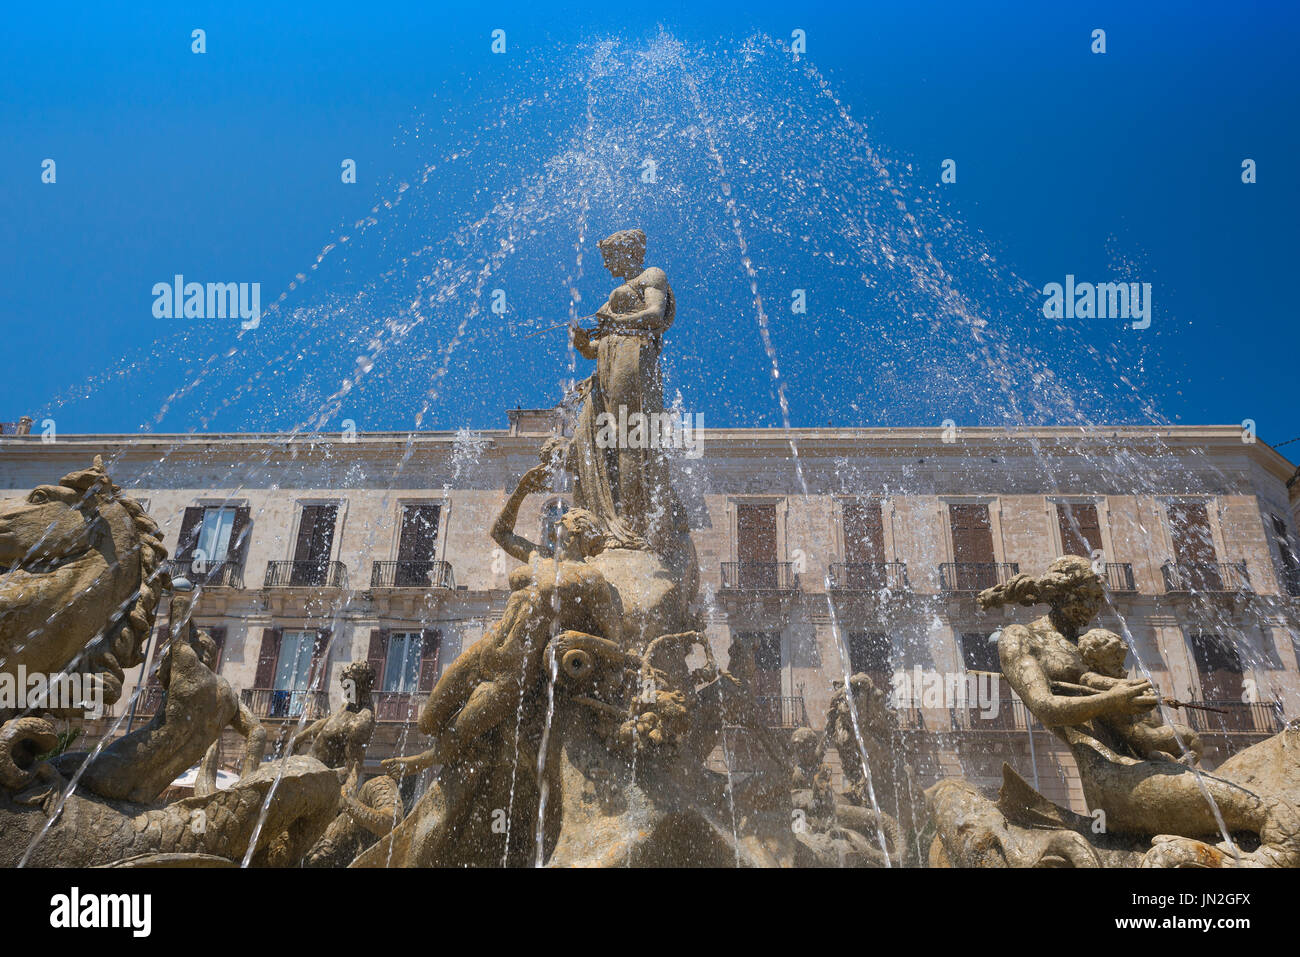 Syracuse Sicily fountain, the famous Fountain of Artemis in the Piazza Archimede in Ortigia,Syracuse,Sicily. - Stock Image